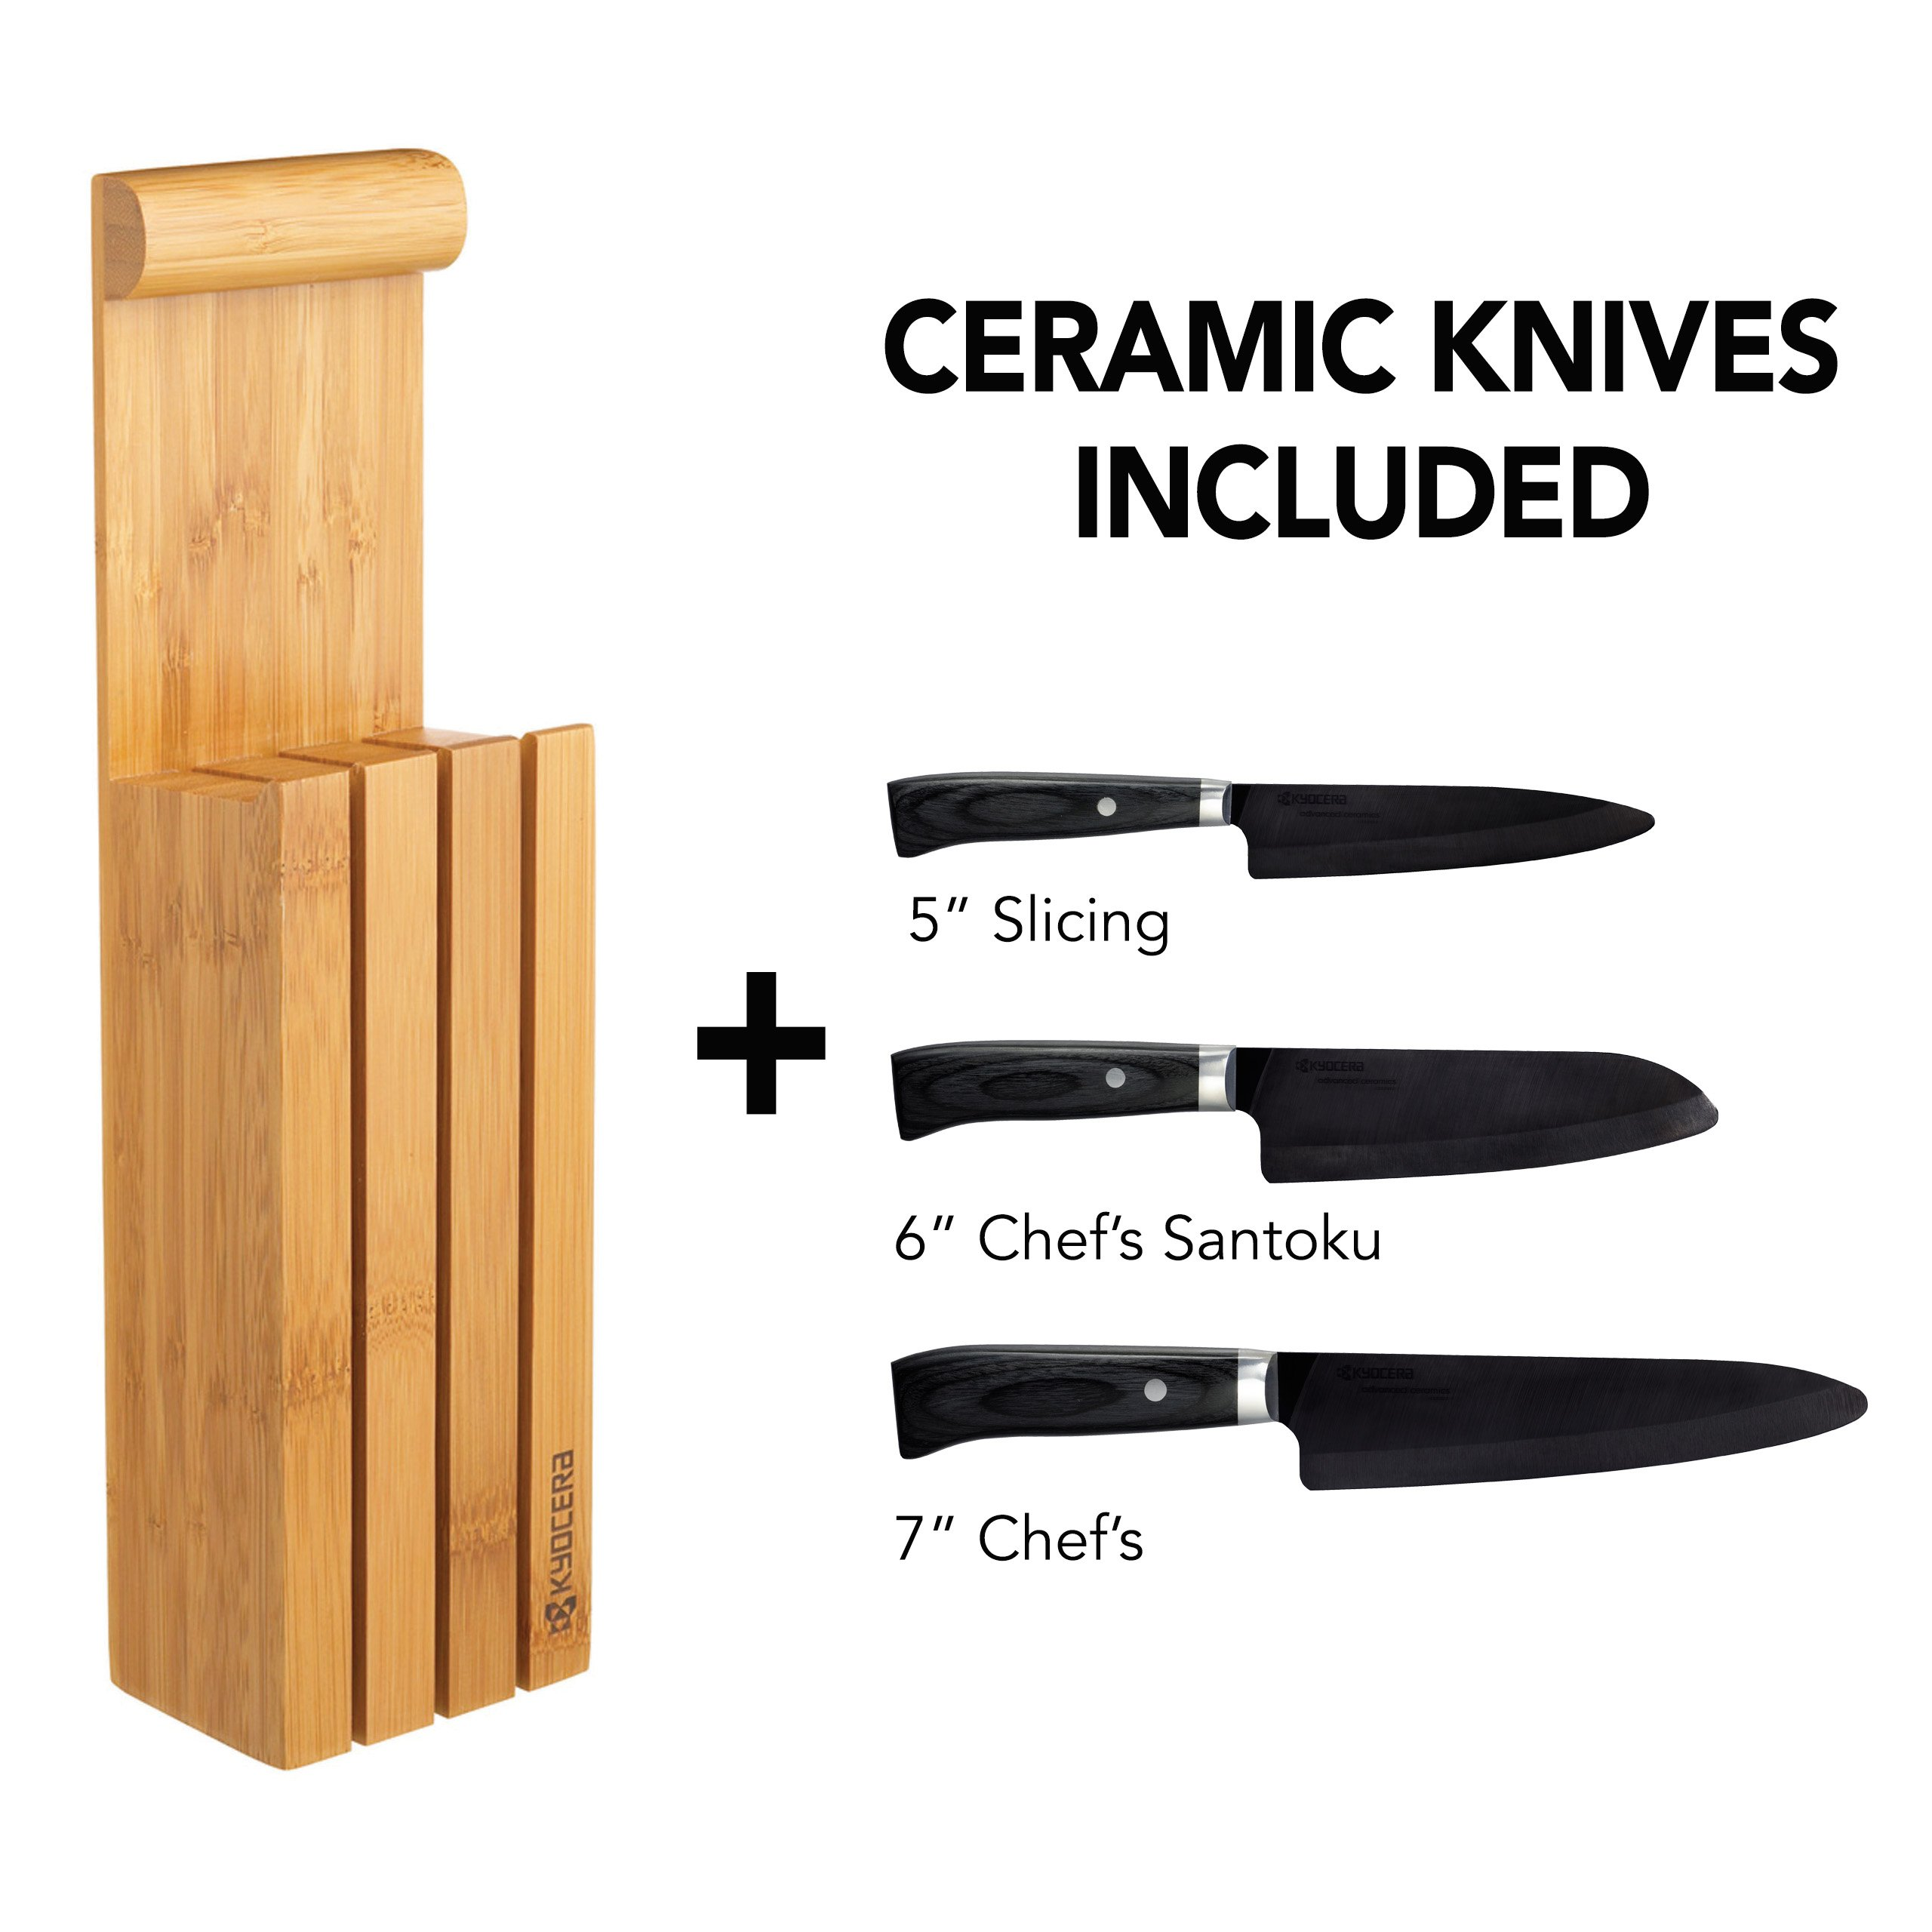 Kyocera 4-Piece Essential Block Set-Includes 3 Kyocera Ceramic Knives and Bamboo Block, Limited Series Handcrafted Pakka Wood handles w/ Black Blades